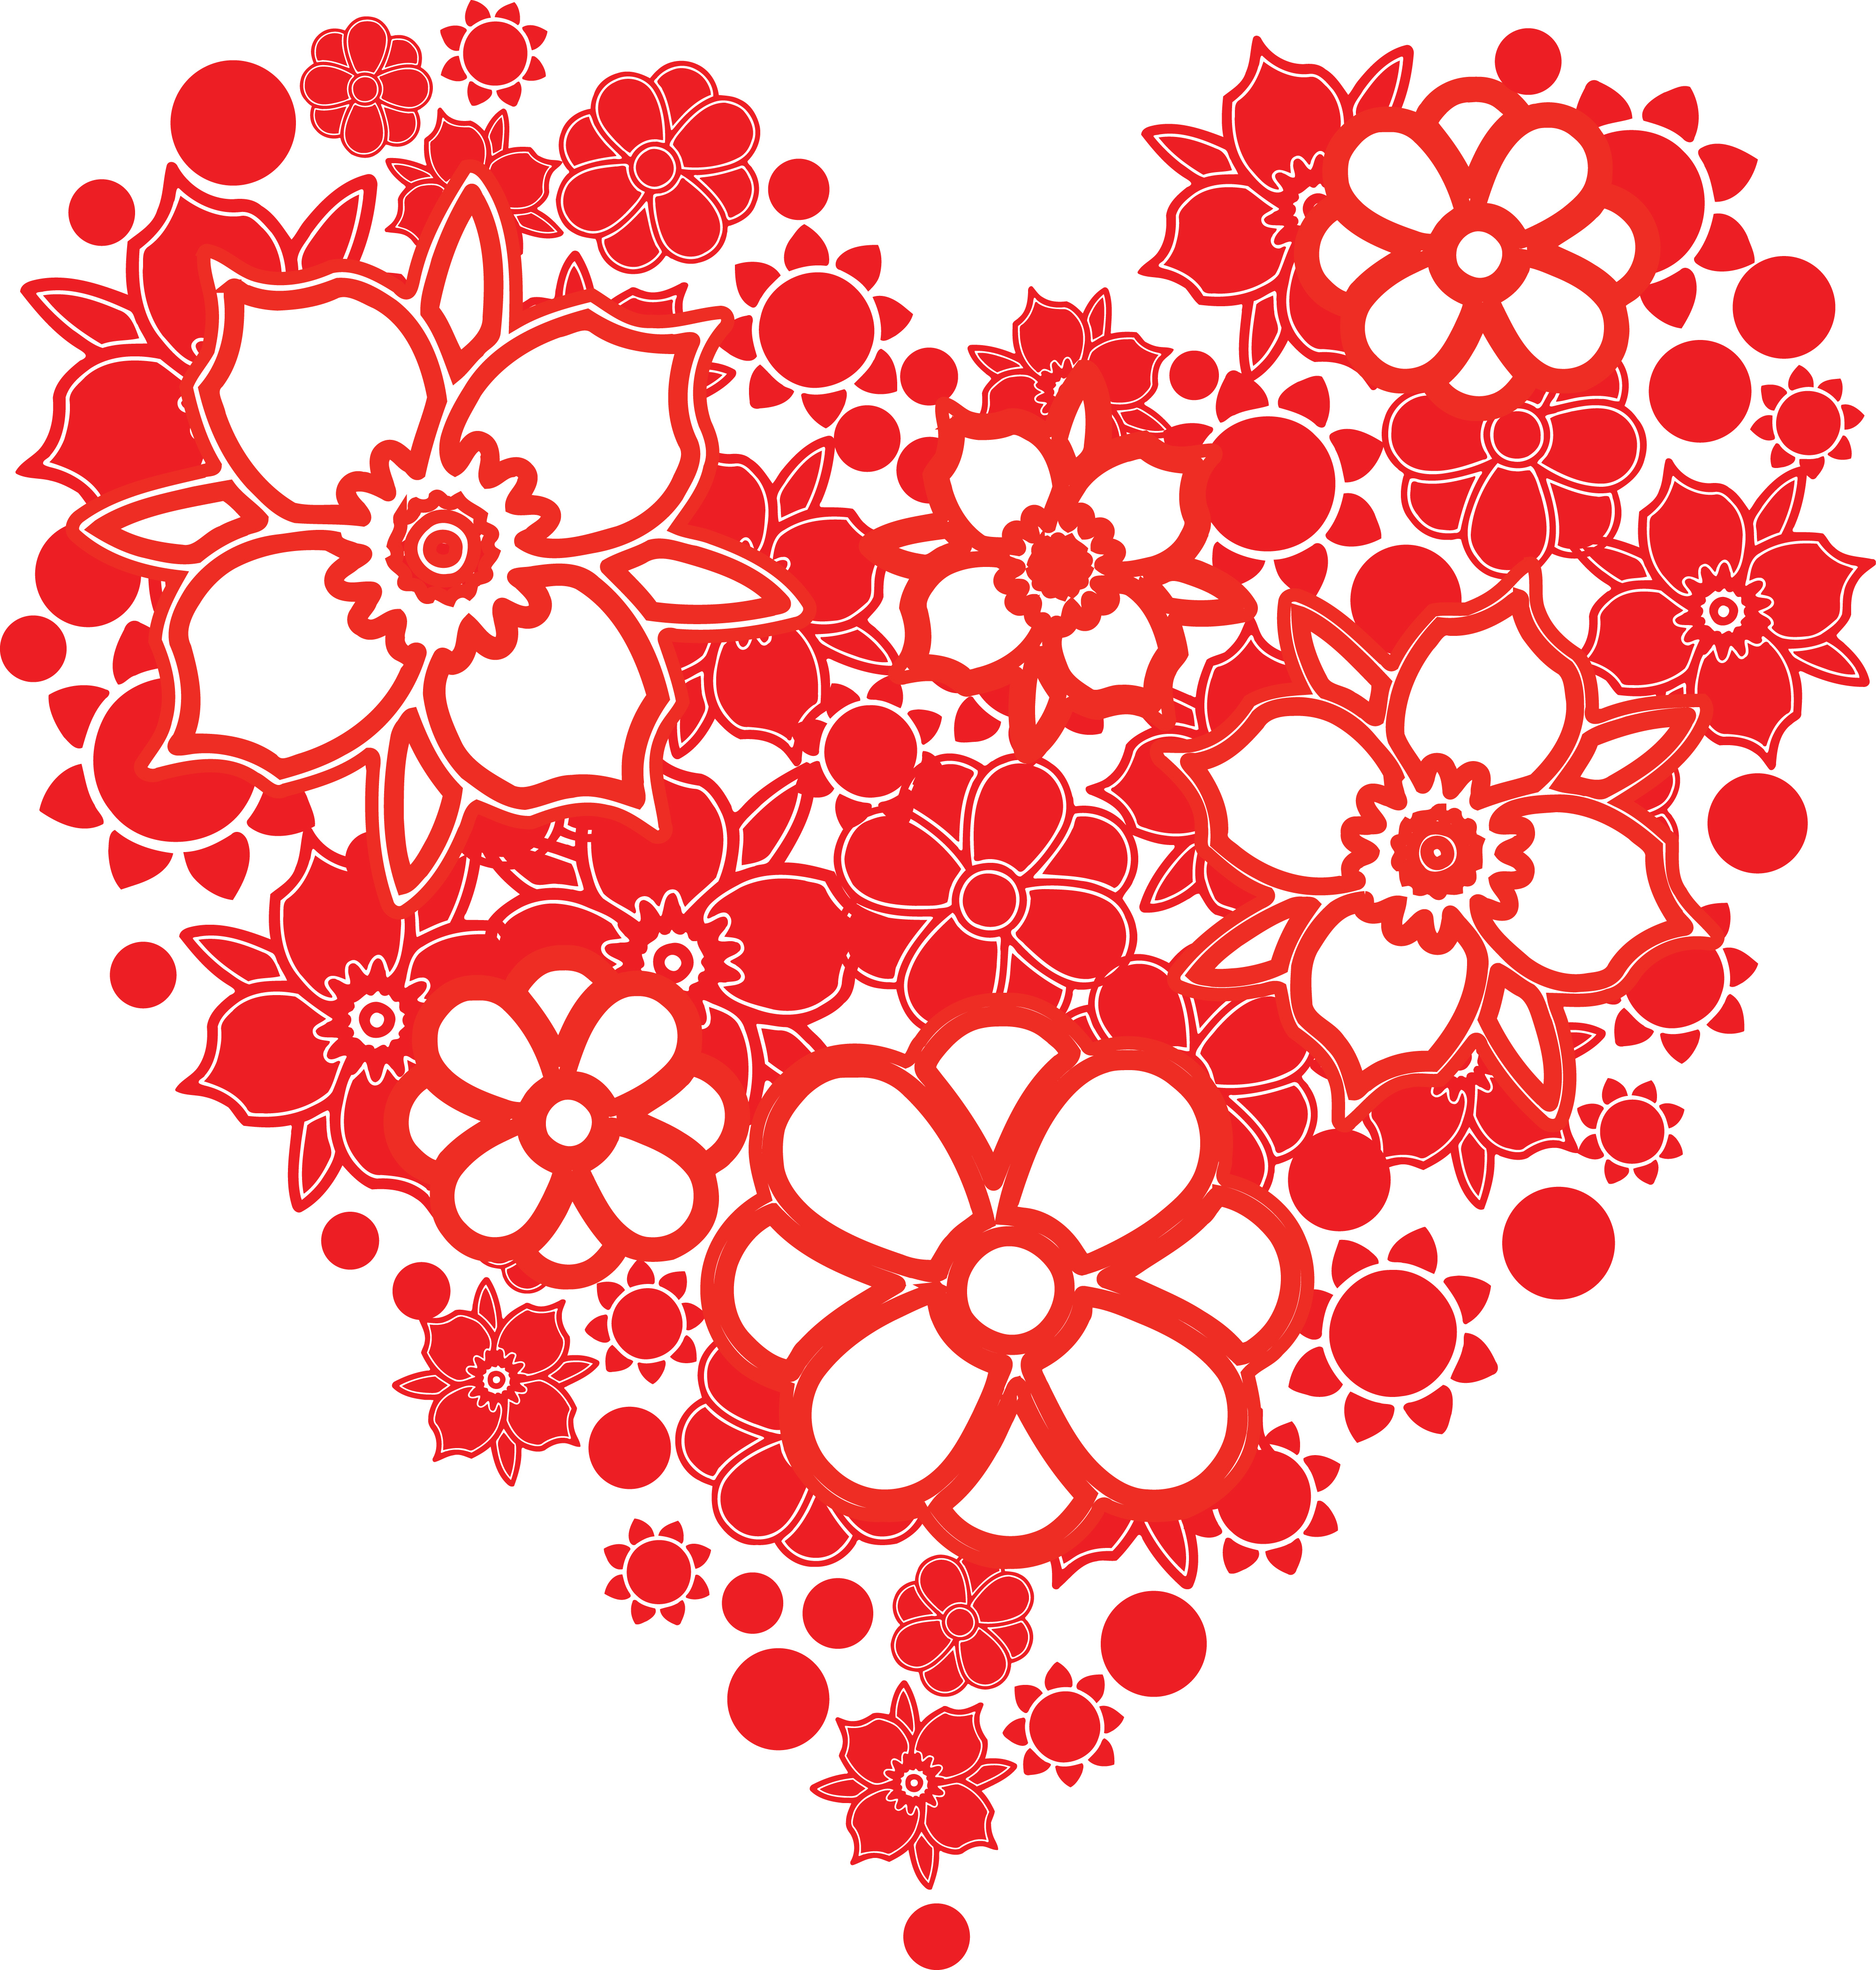 Free Clipart Of A love heart with flowers